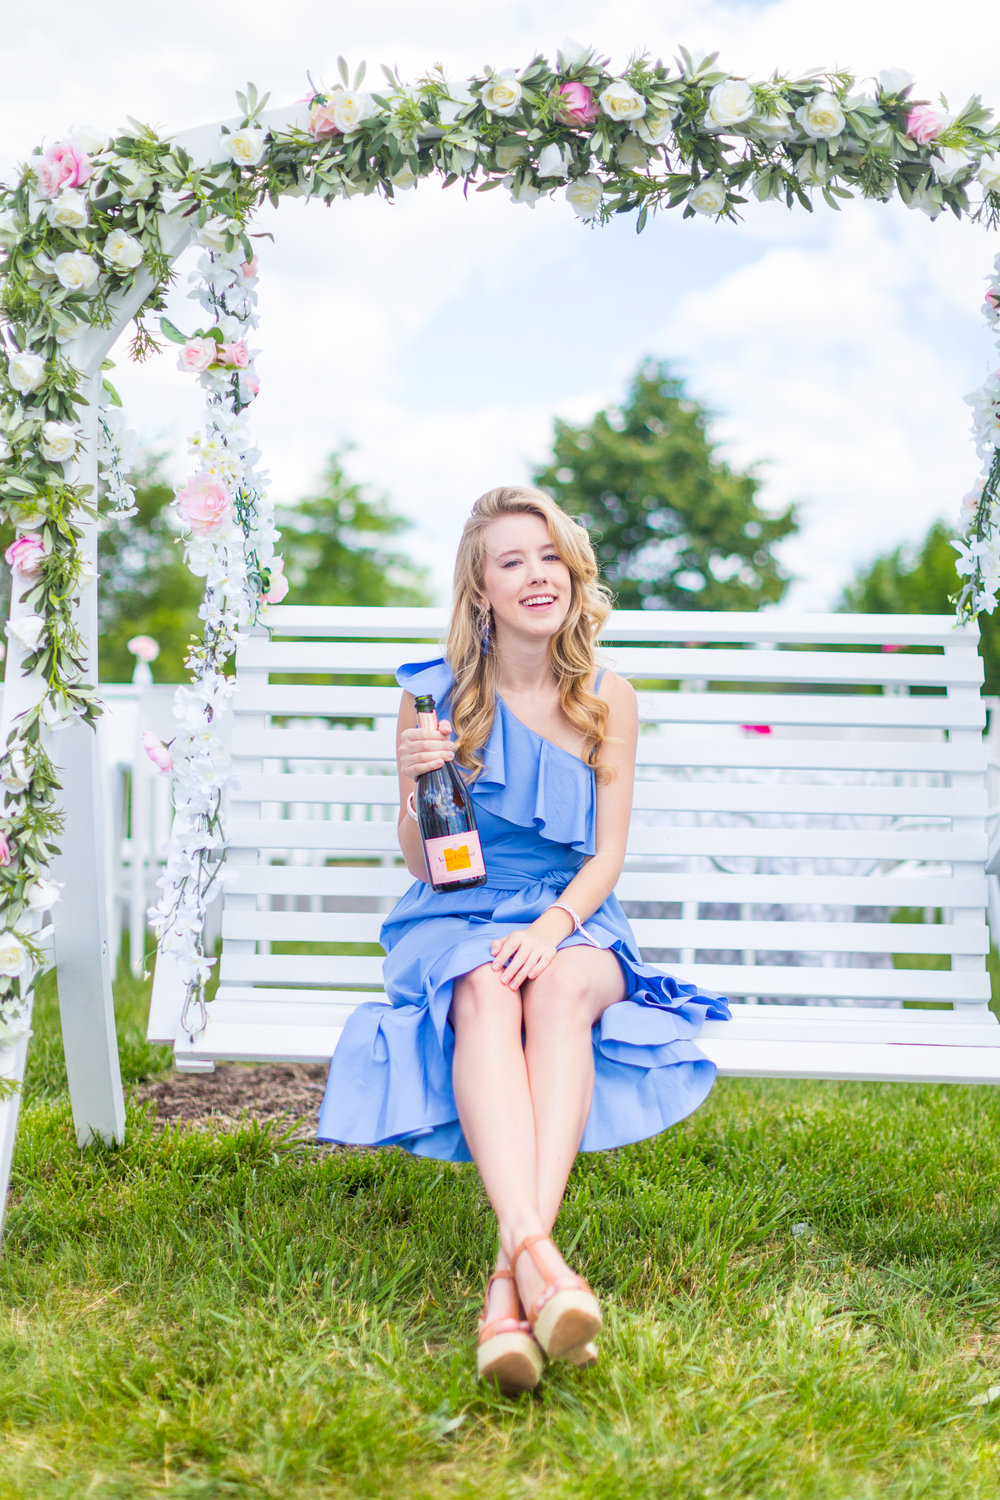 Veuve Clicquot Polo Classic NYC Summer Style Ruffled One Shoulder Blue Dress-19.jpg